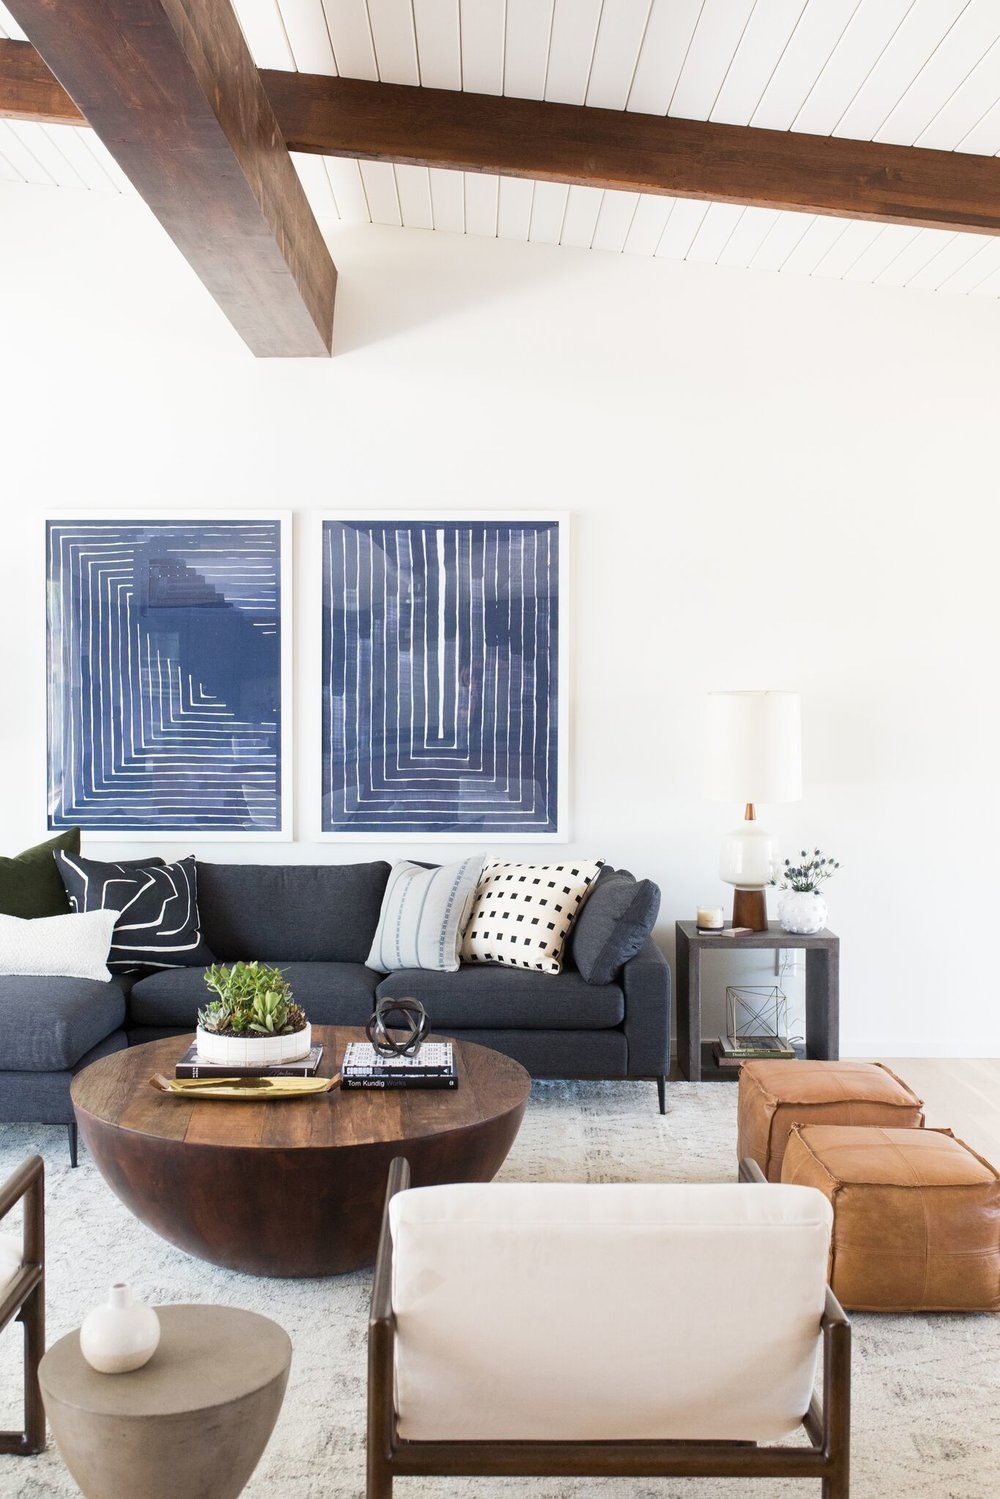 How To Pair A Sectional Sofa With The Appropriate Coffee Table    Roomfortuesday.com